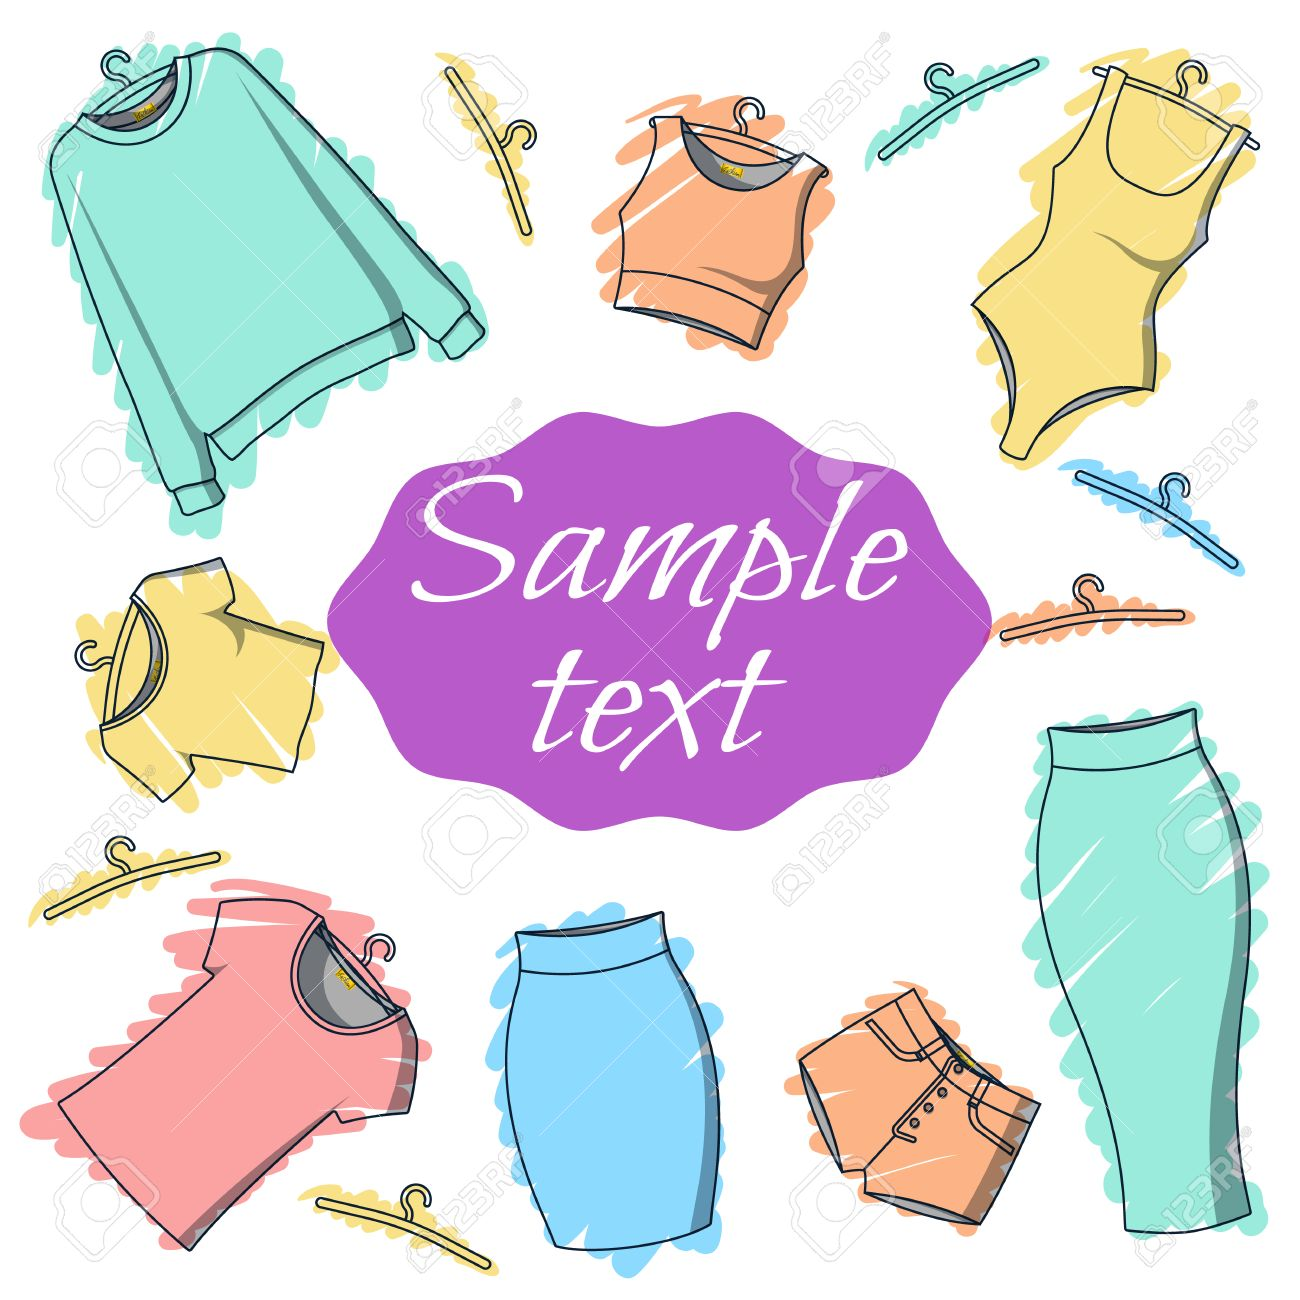 Background Clothes For Design Of Printed Materials Postcard Royalty Free Cliparts Vectors And Stock Illustration Image 43412577